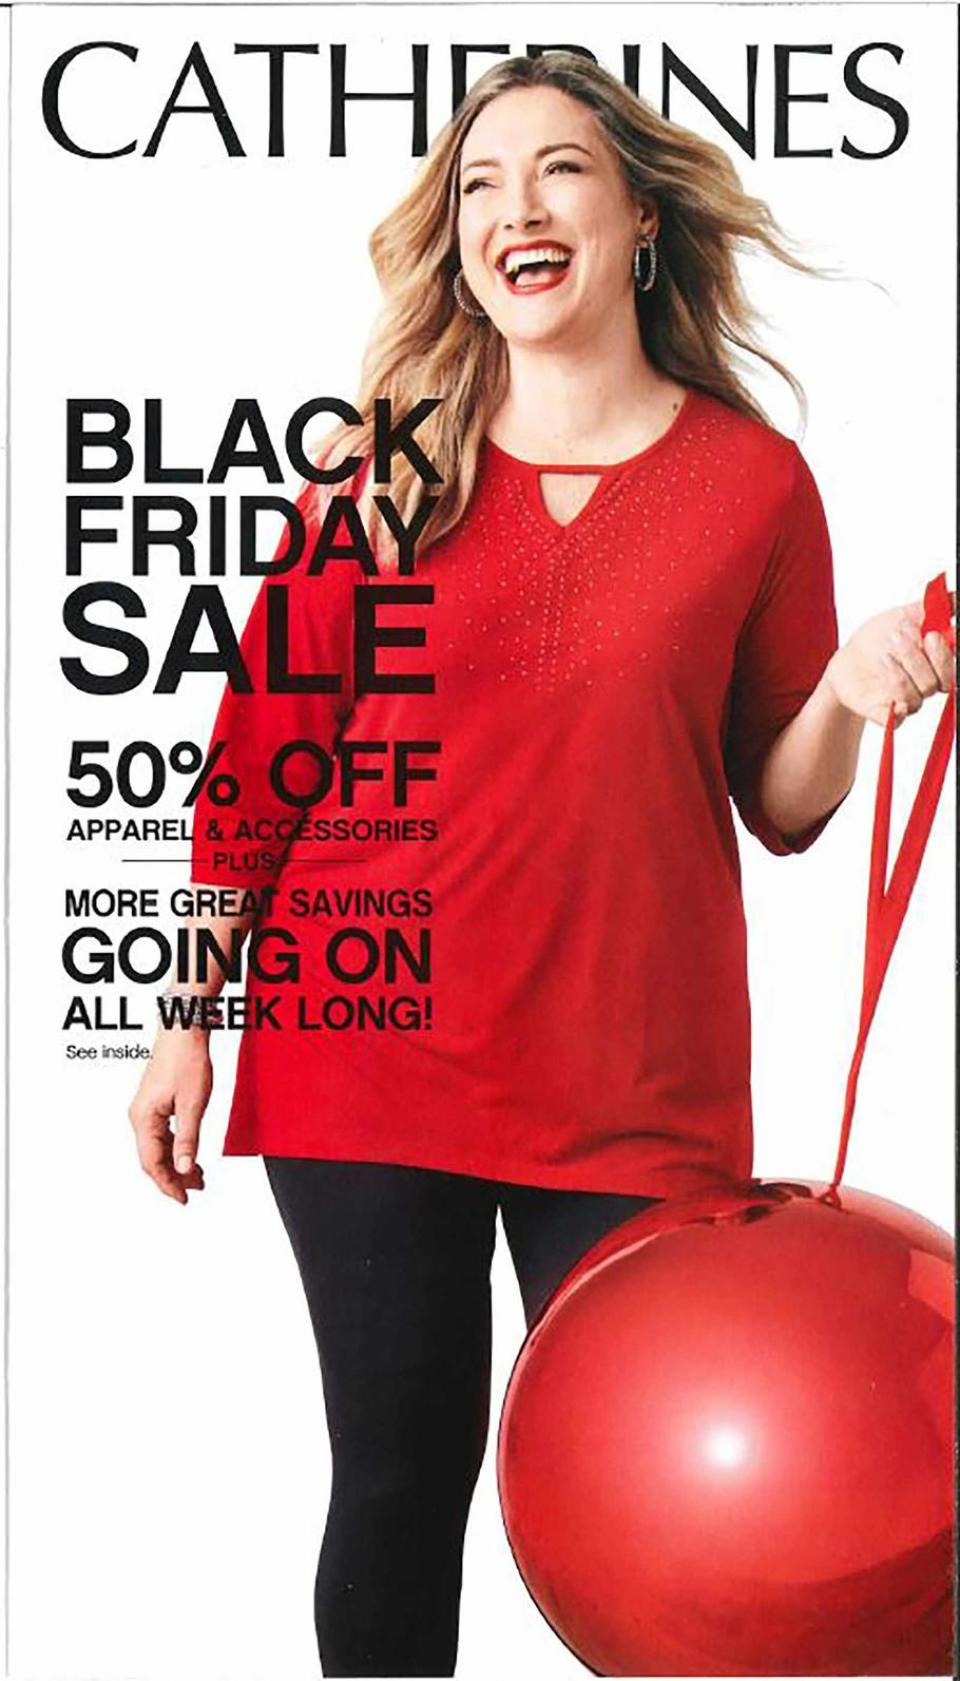 Catherines black friday ad